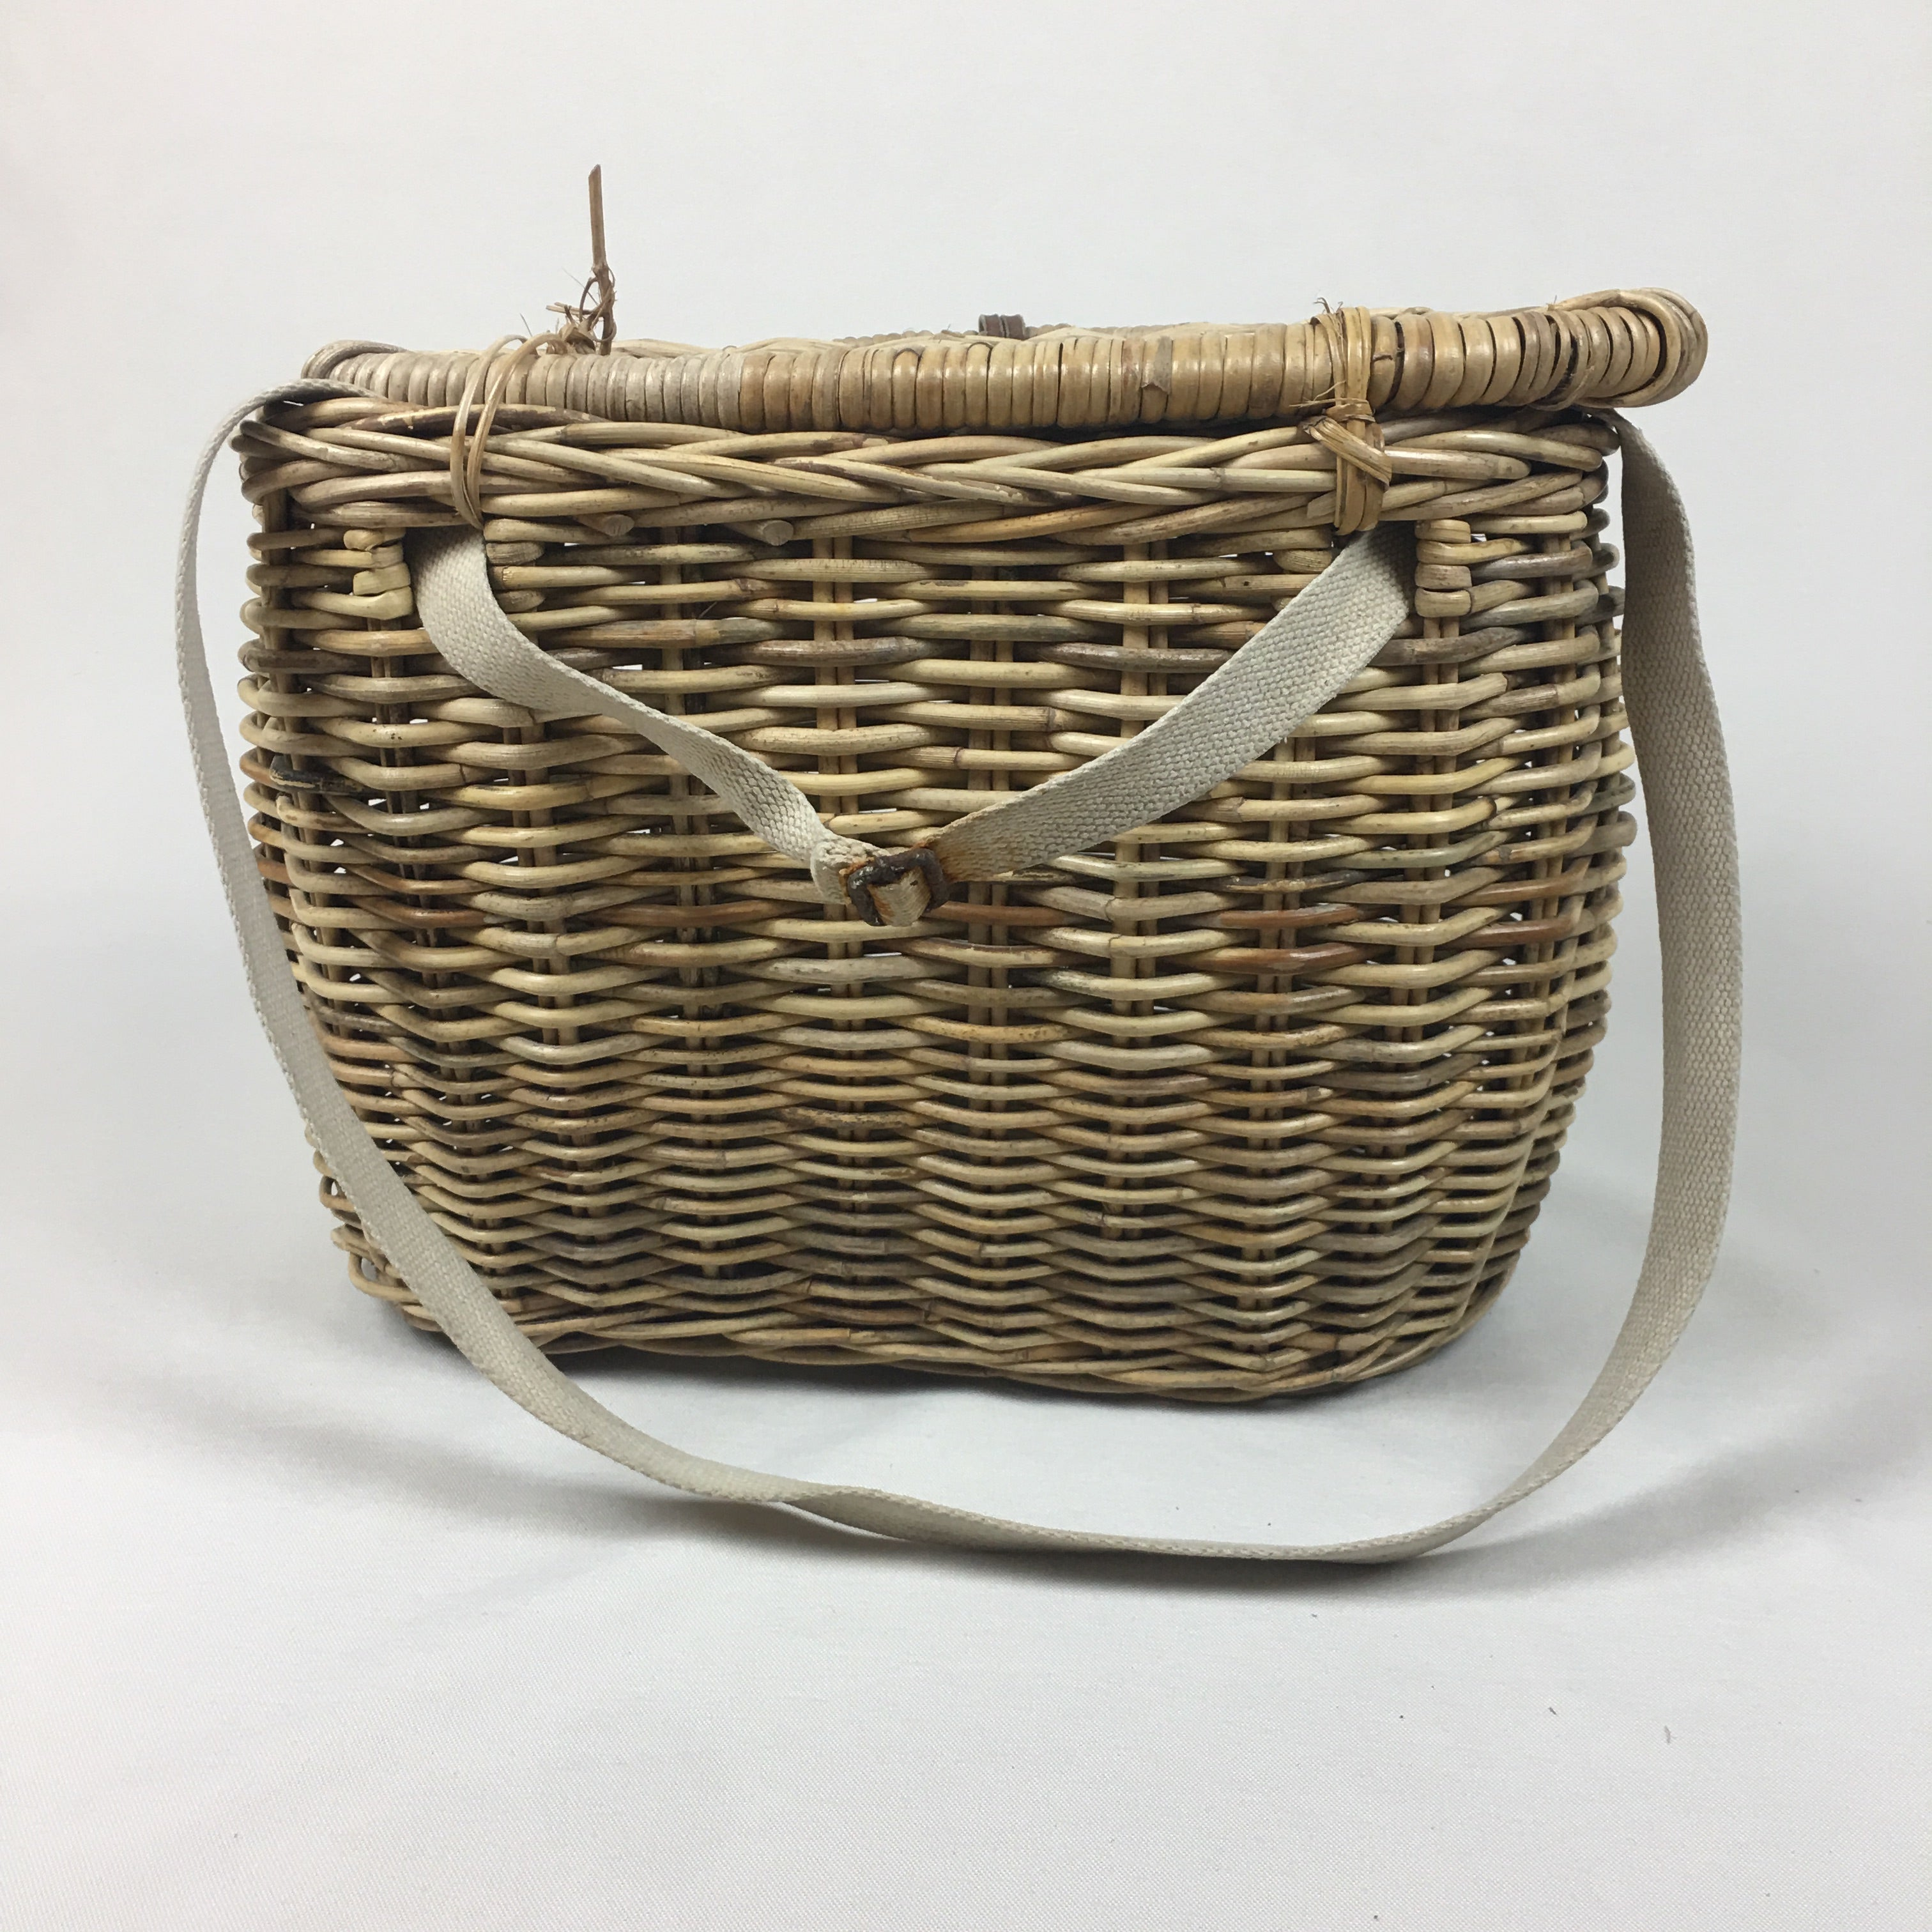 English Fishing Basket